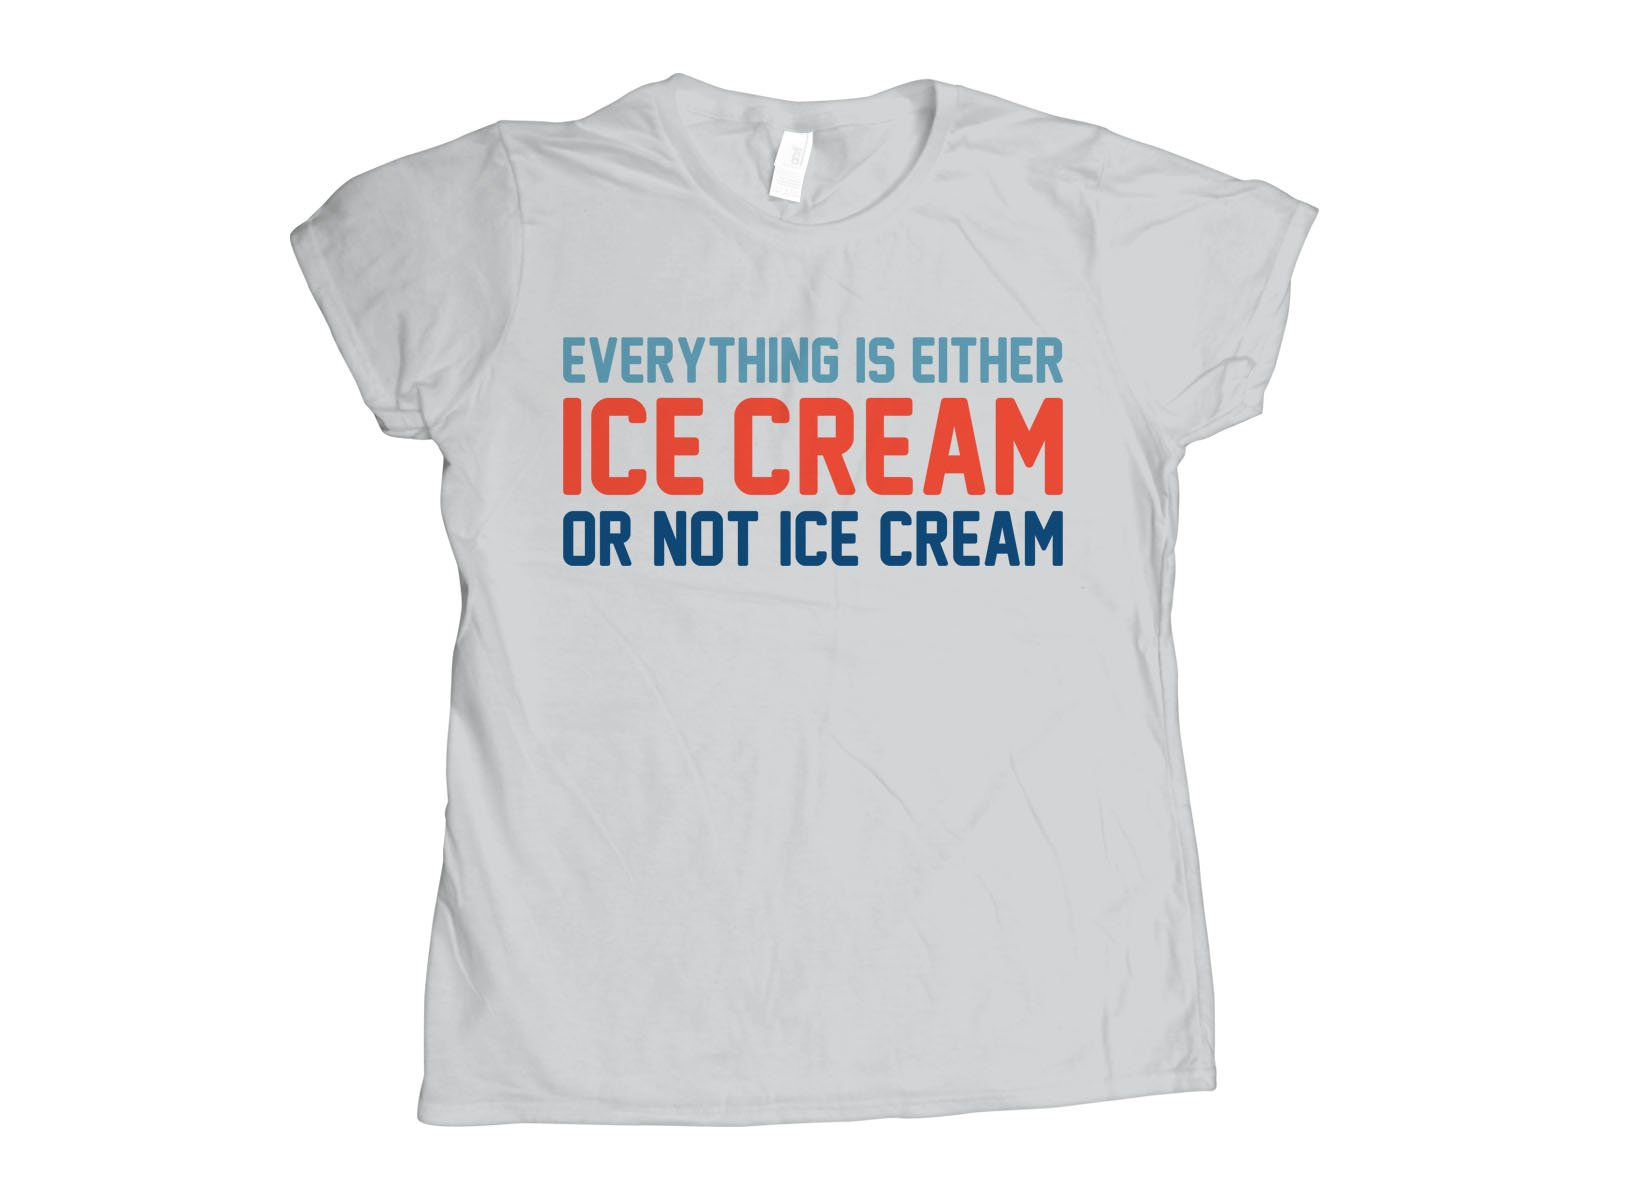 Everything Is Ice Cream Or Not Ice Cream on Womens T-Shirt